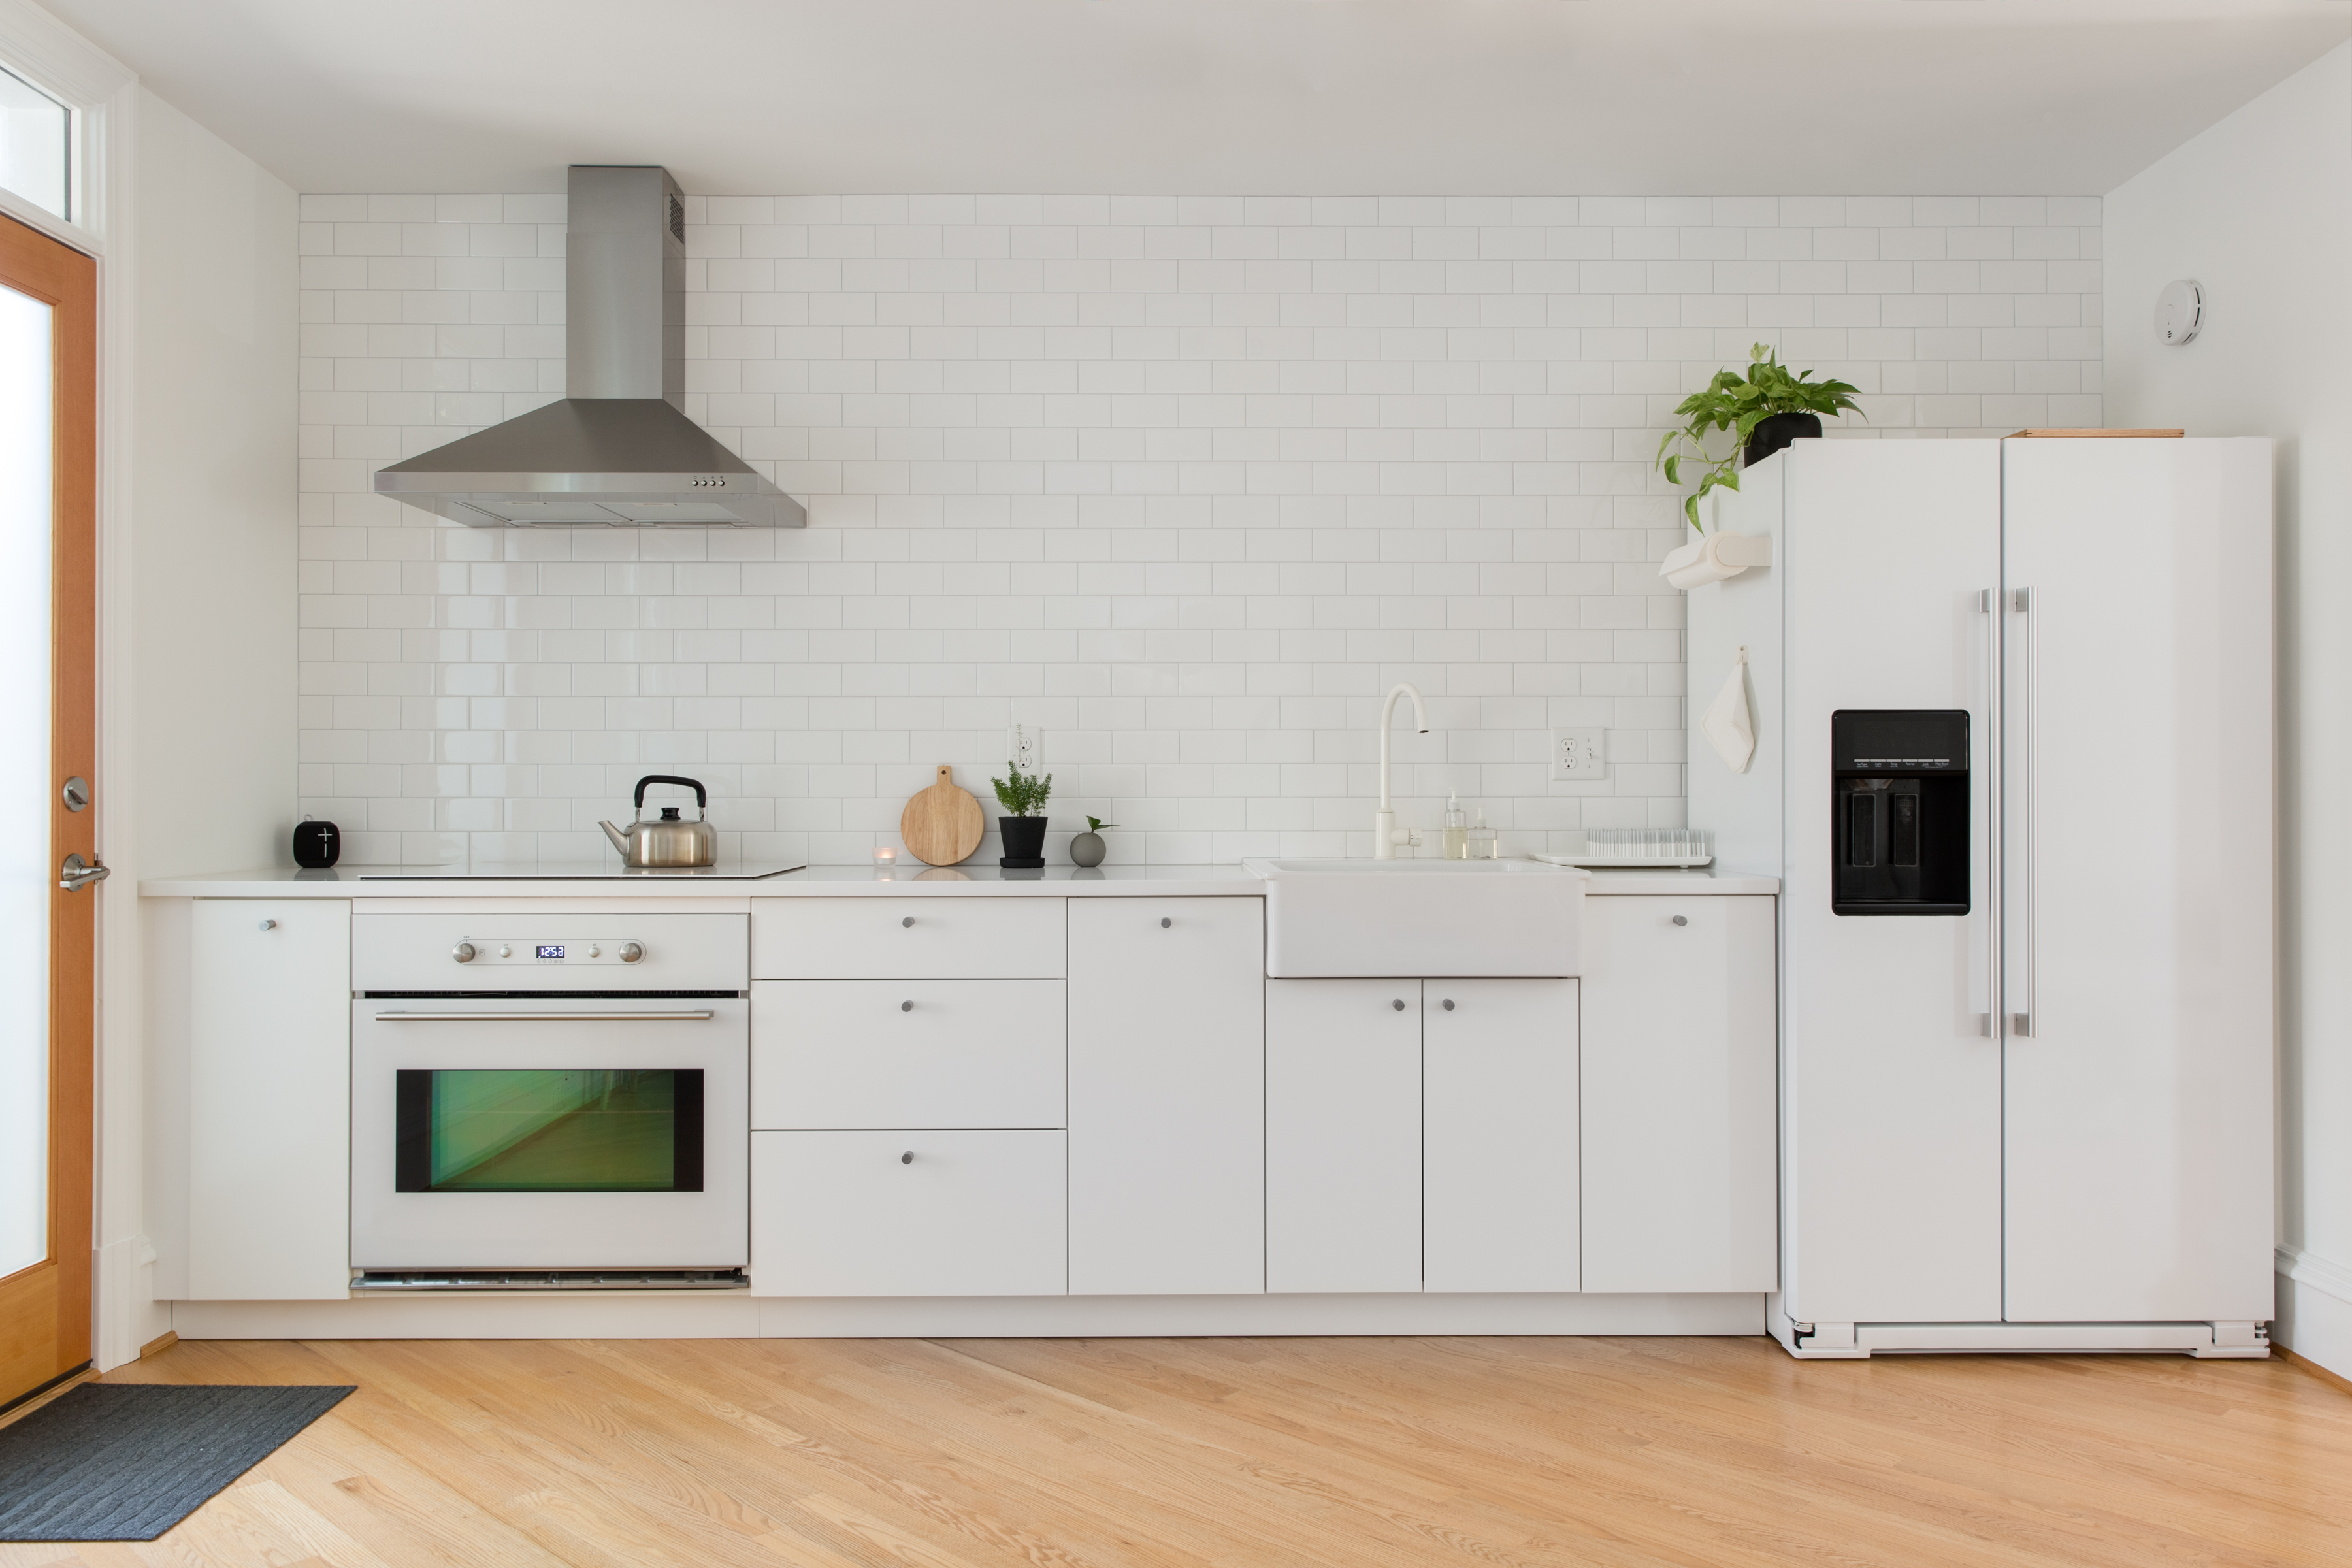 The 10 Commandments Of A Clutter Free Kitchen Kitchn